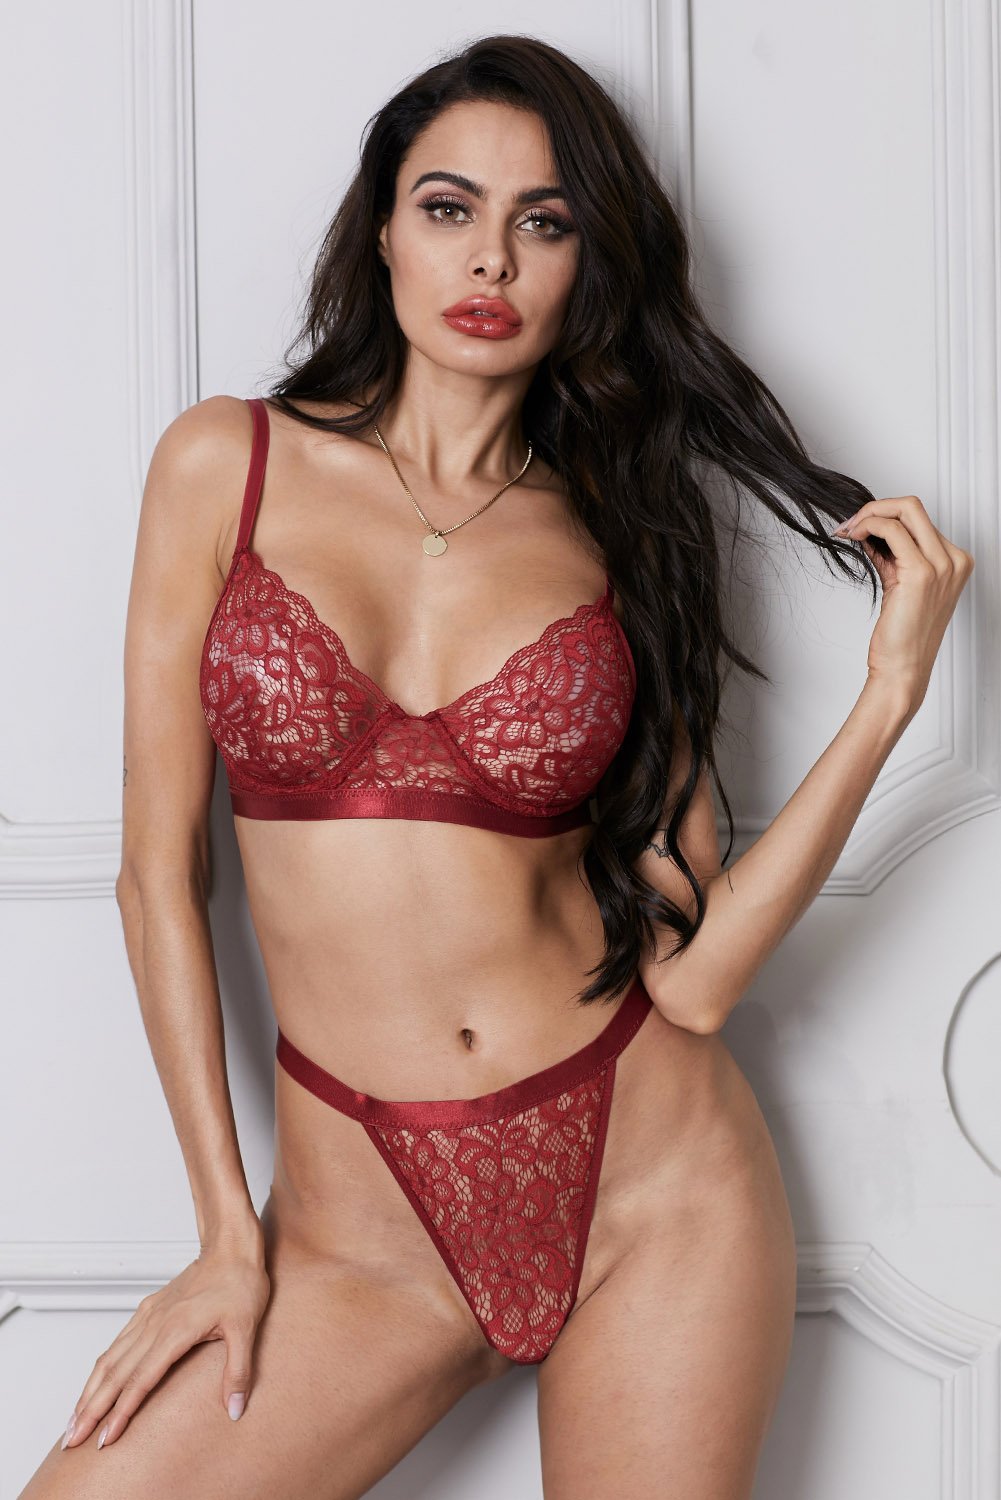 Red Romantic Night Lace Lingerie Bralette Set - Winter Haven Co